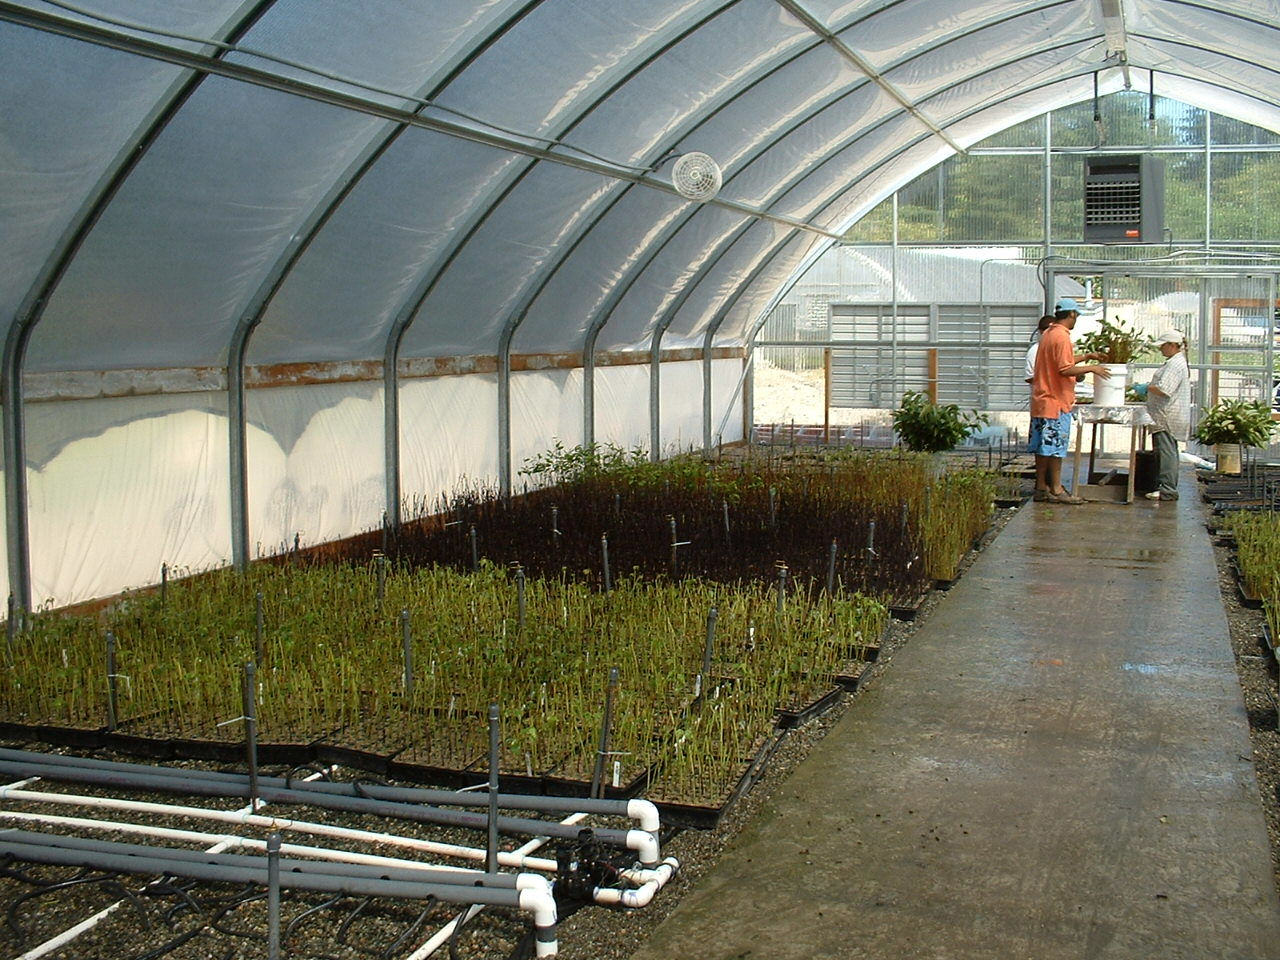 inhouse nursery WA